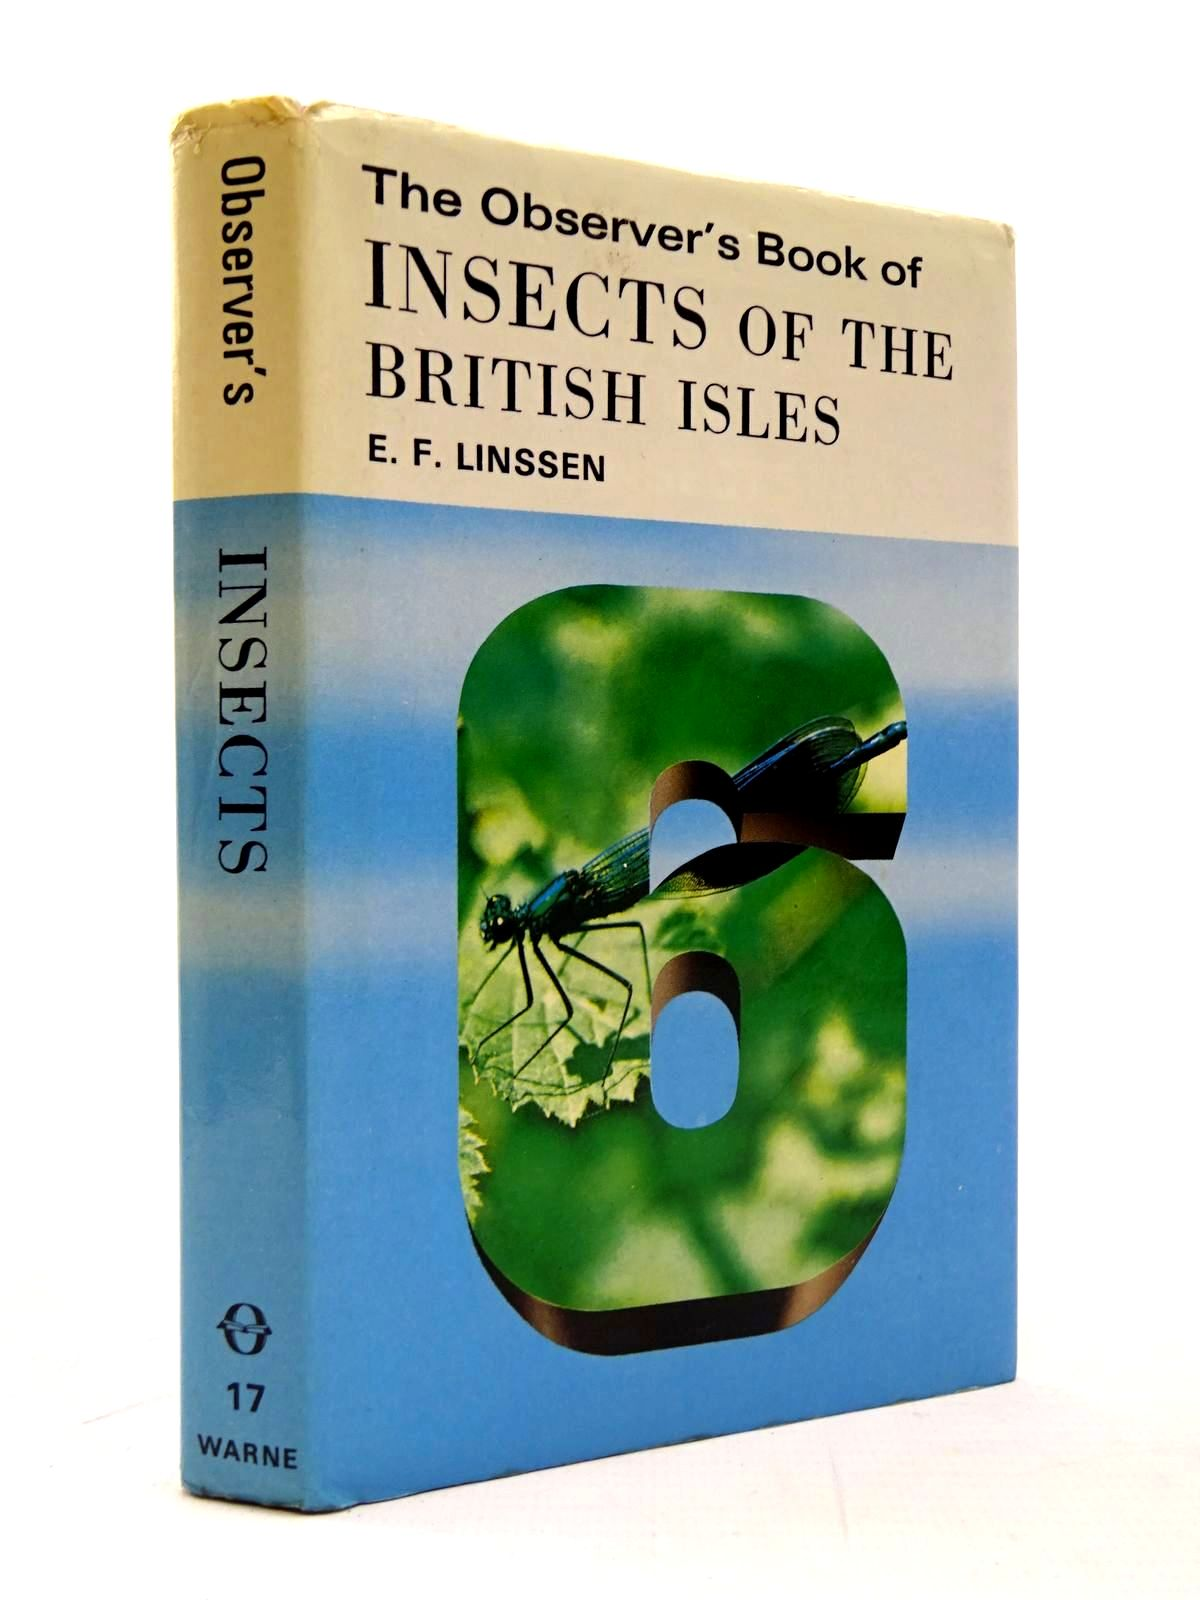 Photo of THE OBSERVER'S BOOK OF INSECTS OF THE BRITISH ISLES (CYANAMID WRAPPER)